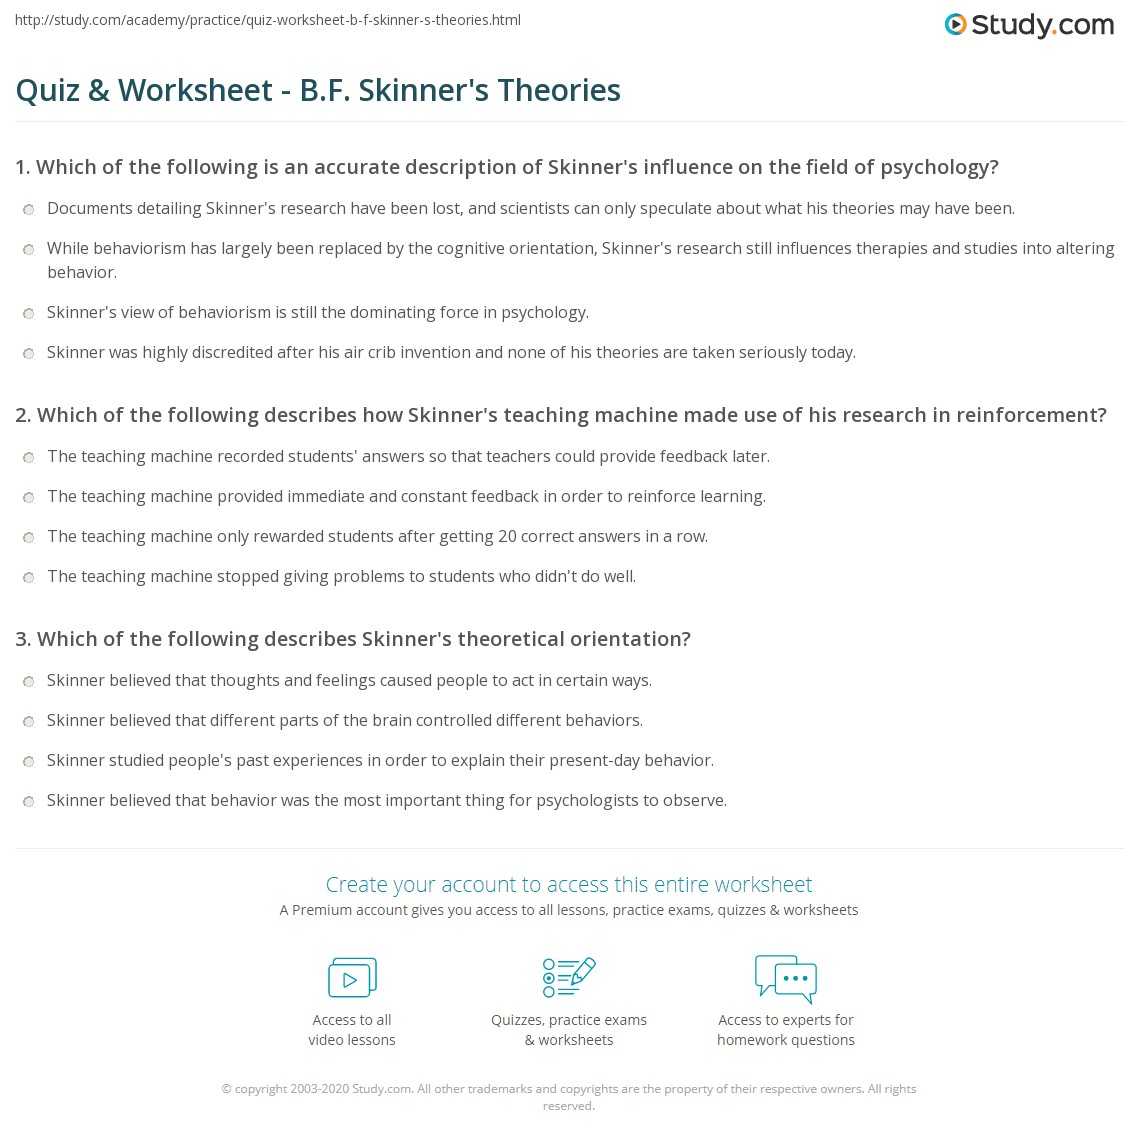 quiz worksheet b f skinner 39 s theories. Black Bedroom Furniture Sets. Home Design Ideas